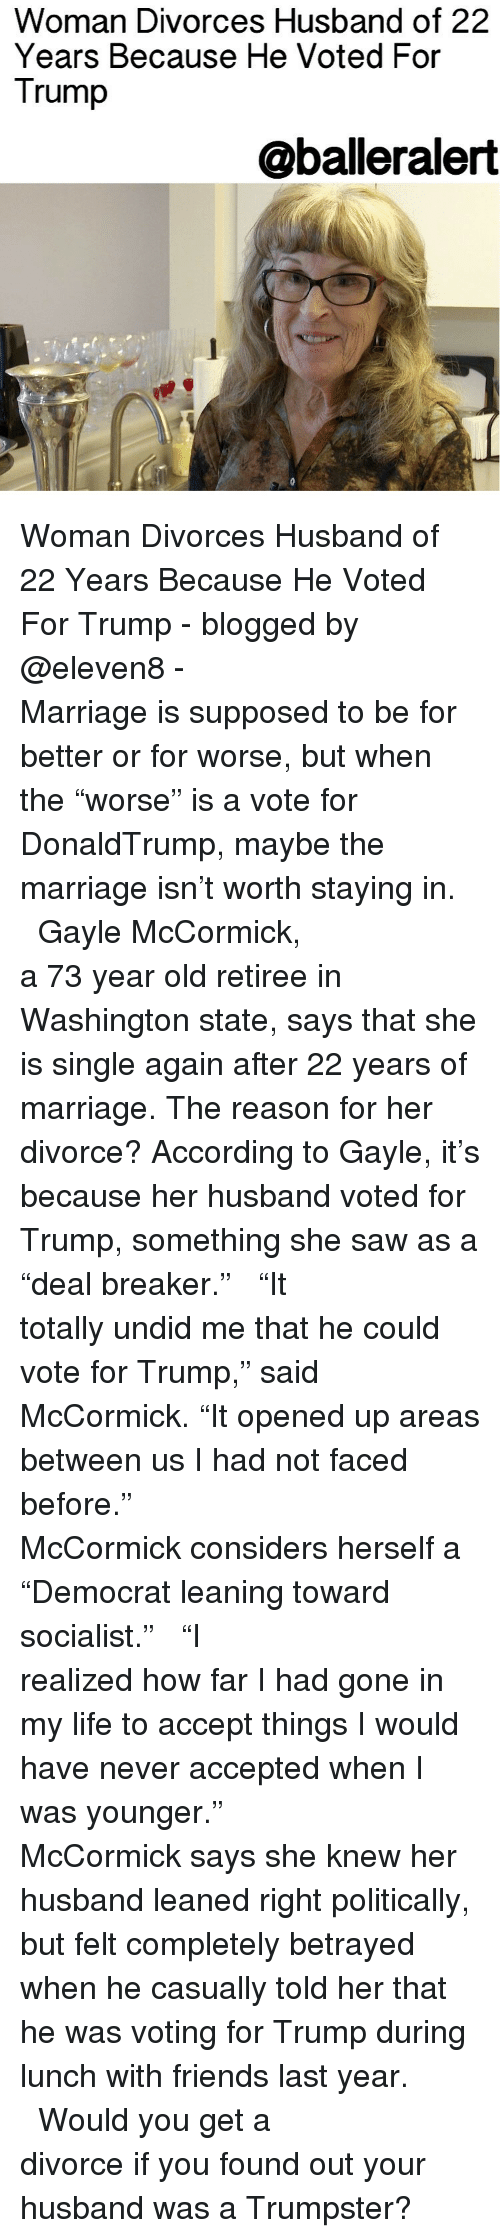 """deal breaker: Woman Divorces Husband of 22  Years Because He Voted For  Trump  @balleralert Woman Divorces Husband of 22 Years Because He Voted For Trump - blogged by @eleven8 - ⠀⠀⠀⠀⠀⠀⠀⠀⠀ ⠀⠀⠀⠀⠀⠀⠀⠀⠀ Marriage is supposed to be for better or for worse, but when the """"worse"""" is a vote for DonaldTrump, maybe the marriage isn't worth staying in. ⠀⠀⠀⠀⠀⠀⠀⠀⠀ ⠀⠀⠀⠀⠀⠀⠀⠀⠀ Gayle McCormick, a 73 year old retiree in Washington state, says that she is single again after 22 years of marriage. The reason for her divorce? According to Gayle, it's because her husband voted for Trump, something she saw as a """"deal breaker."""" ⠀⠀⠀⠀⠀⠀⠀⠀⠀ ⠀⠀⠀⠀⠀⠀⠀⠀⠀ """"It totally undid me that he could vote for Trump,"""" said McCormick. """"It opened up areas between us I had not faced before."""" ⠀⠀⠀⠀⠀⠀⠀⠀⠀ ⠀⠀⠀⠀⠀⠀⠀⠀⠀ McCormick considers herself a """"Democrat leaning toward socialist."""" ⠀⠀⠀⠀⠀⠀⠀⠀⠀ ⠀⠀⠀⠀⠀⠀⠀⠀⠀ """"I realized how far I had gone in my life to accept things I would have never accepted when I was younger."""" ⠀⠀⠀⠀⠀⠀⠀⠀⠀ ⠀⠀⠀⠀⠀⠀⠀⠀⠀ McCormick says she knew her husband leaned right politically, but felt completely betrayed when he casually told her that he was voting for Trump during lunch with friends last year. ⠀⠀⠀⠀⠀⠀⠀⠀⠀ ⠀⠀⠀⠀⠀⠀⠀⠀⠀ Would you get a divorce if you found out your husband was a Trumpster?"""